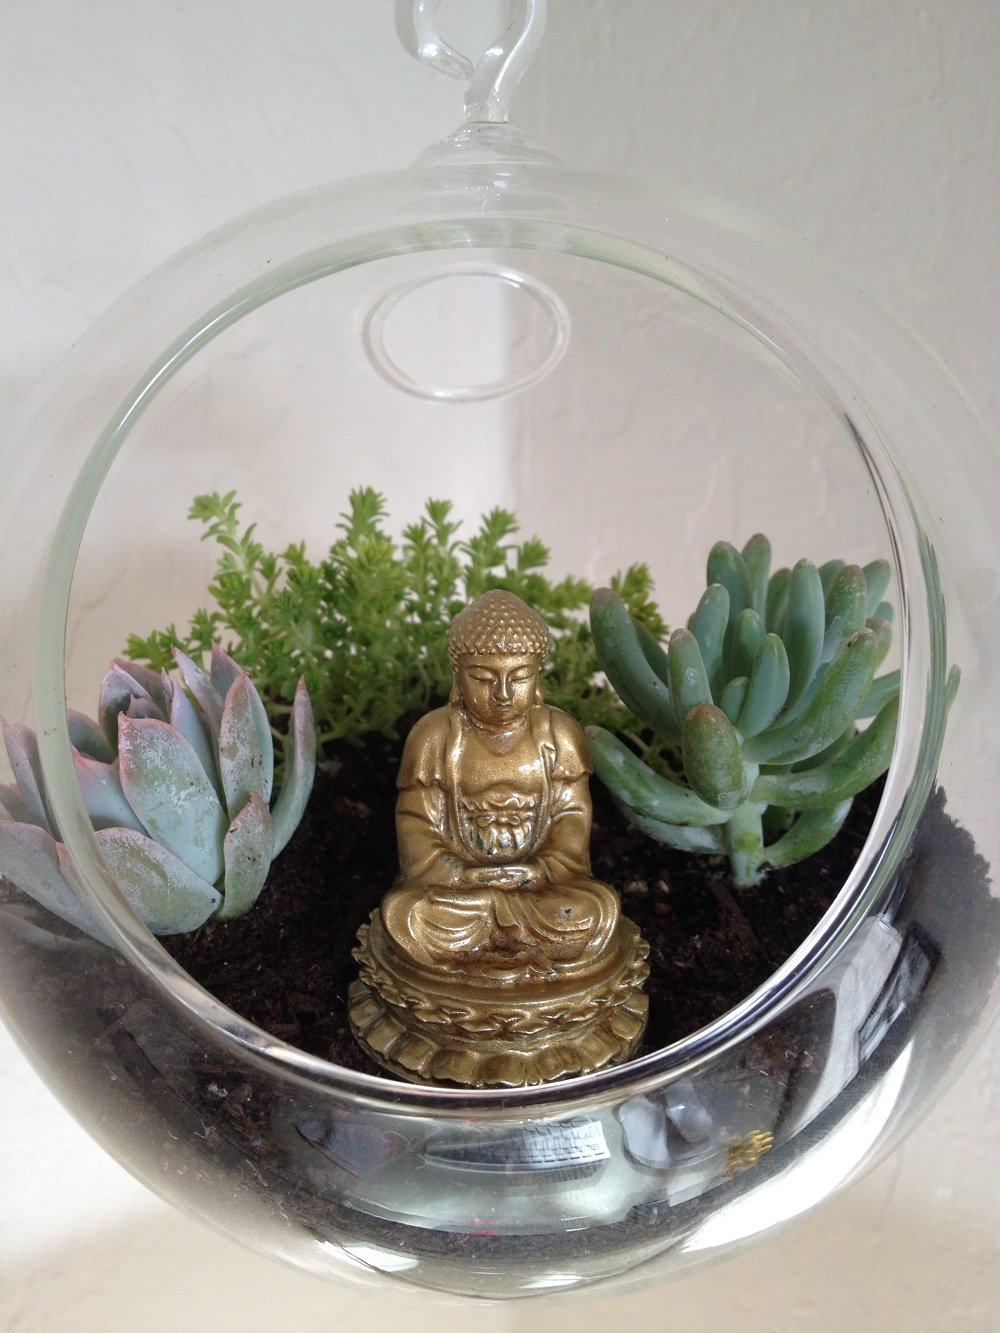 Cactus In Glass Bowl